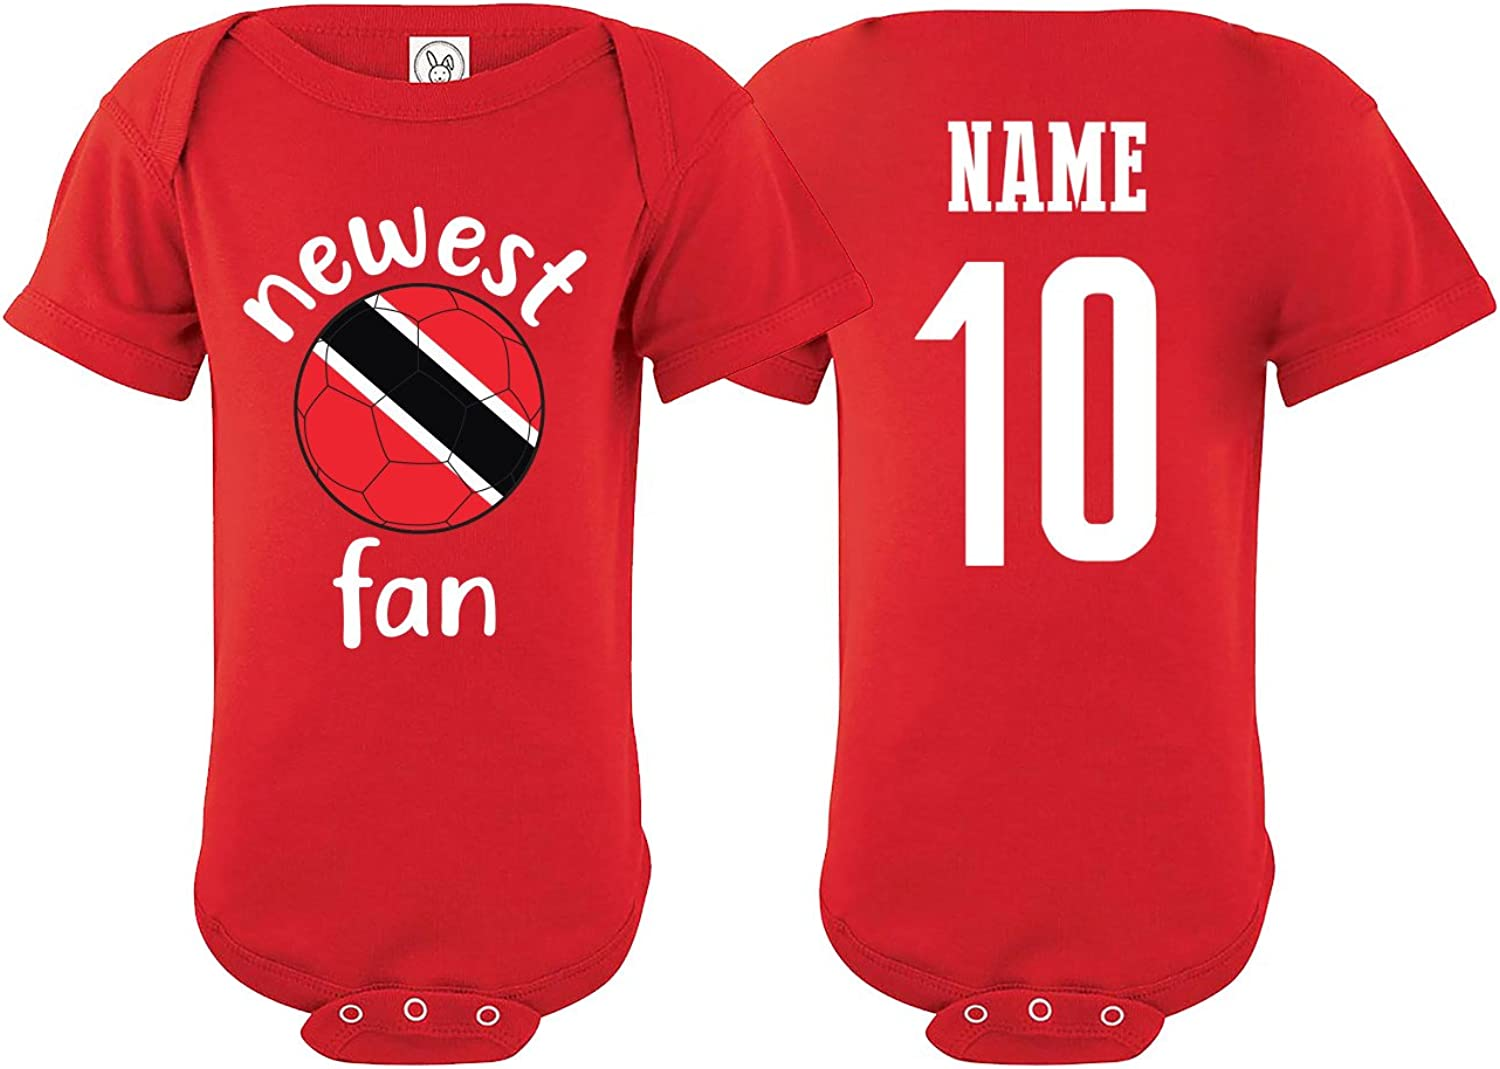 Honduras Bodysuit Add your Name and Number Infant Clothing  Newest Fan Bodysuit Soccer Baby Outfit  Girls Boys T shirt Tee National Team